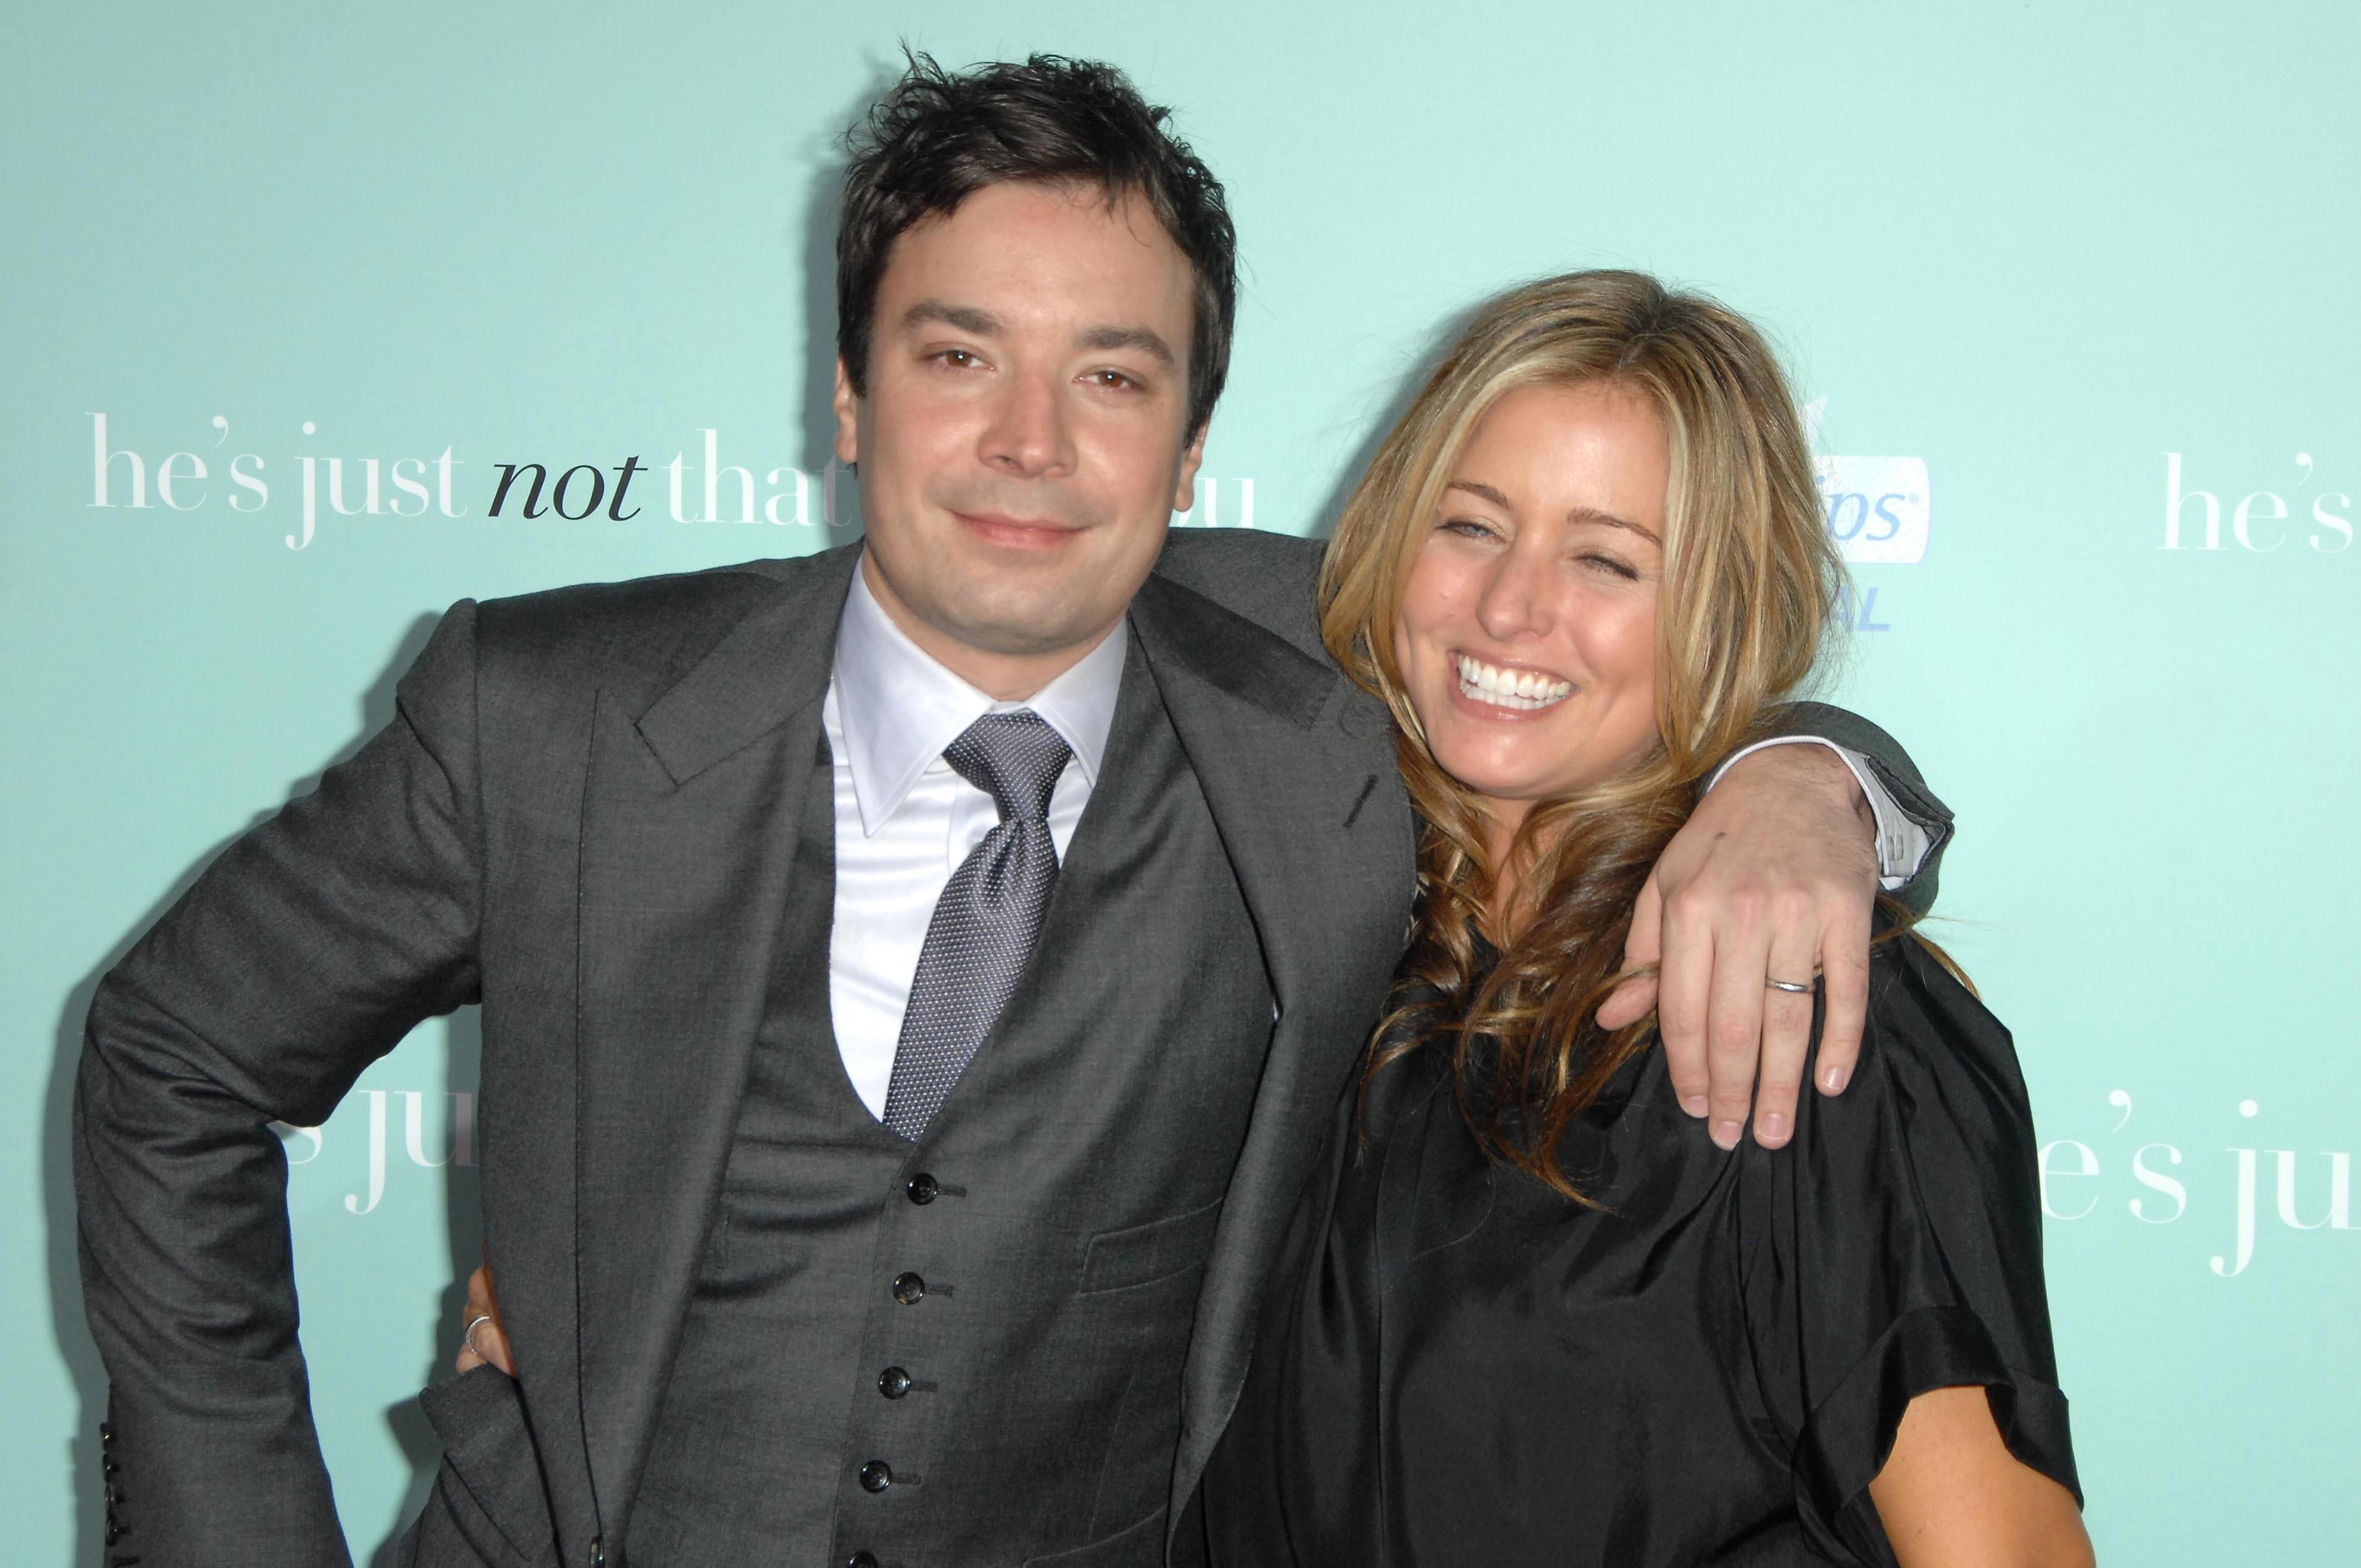 """Jimmy Fallon Jokes That He & His Wife """"Actually Like Each Other"""" During Self-Isolation"""